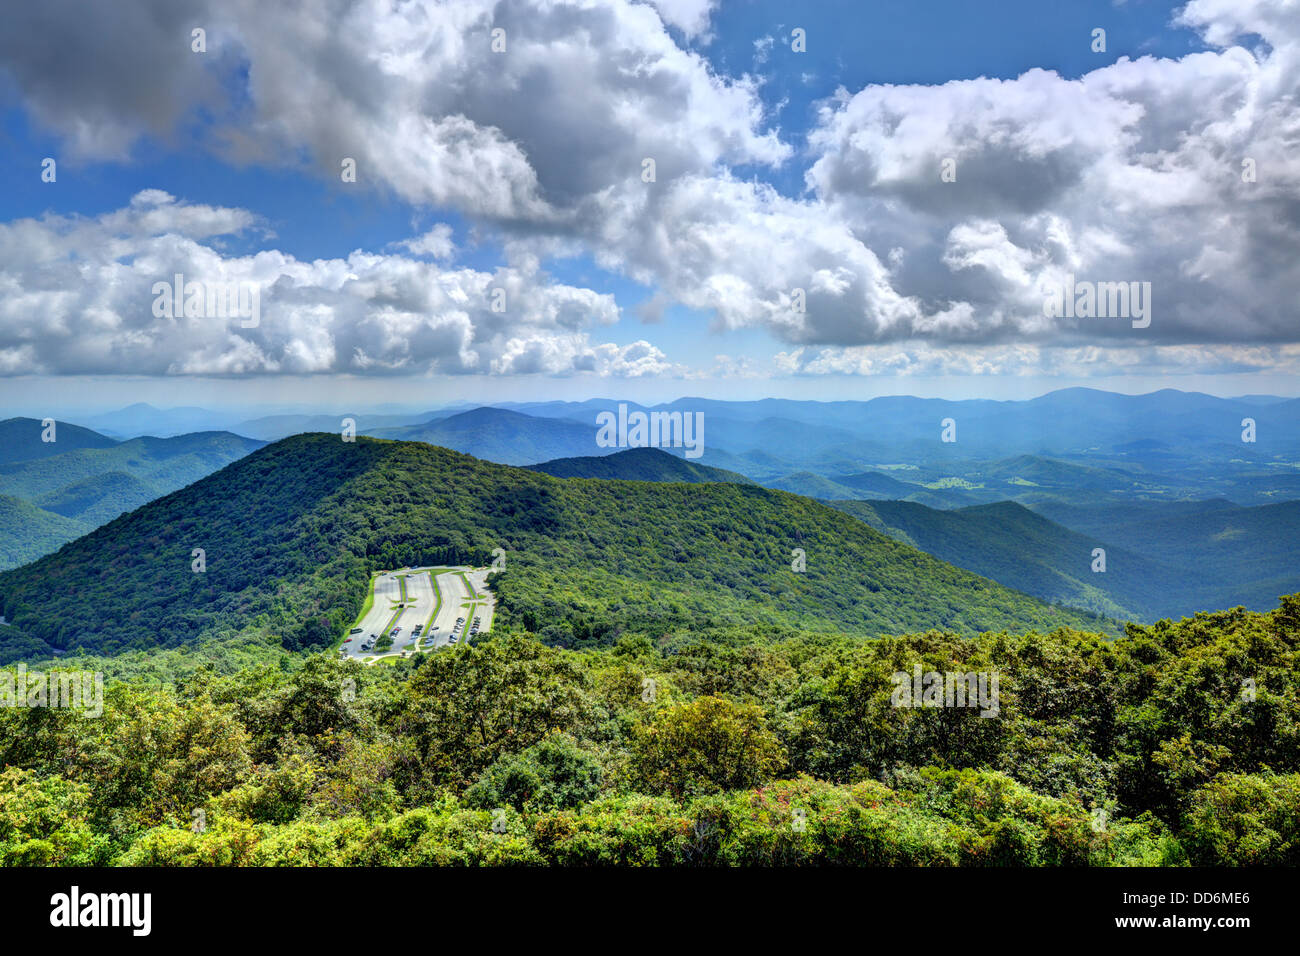 View of Appalachian mountains in north Georgia, USA. - Stock Image